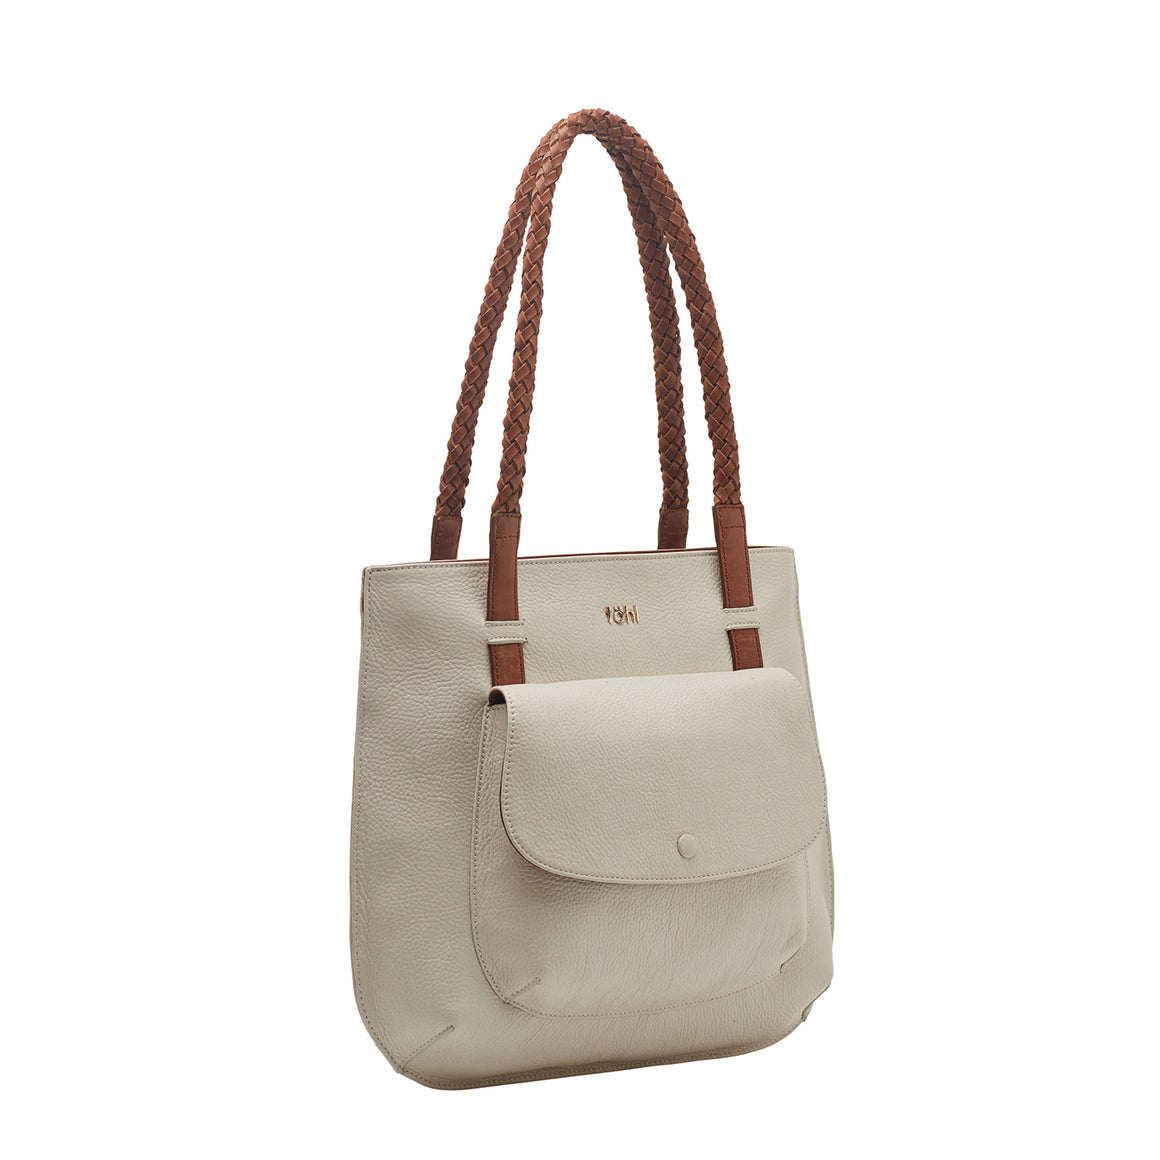 TT 0007 - TOHL GARRET WOMEN'S TOTES & BUCKET BAGS - WHITE